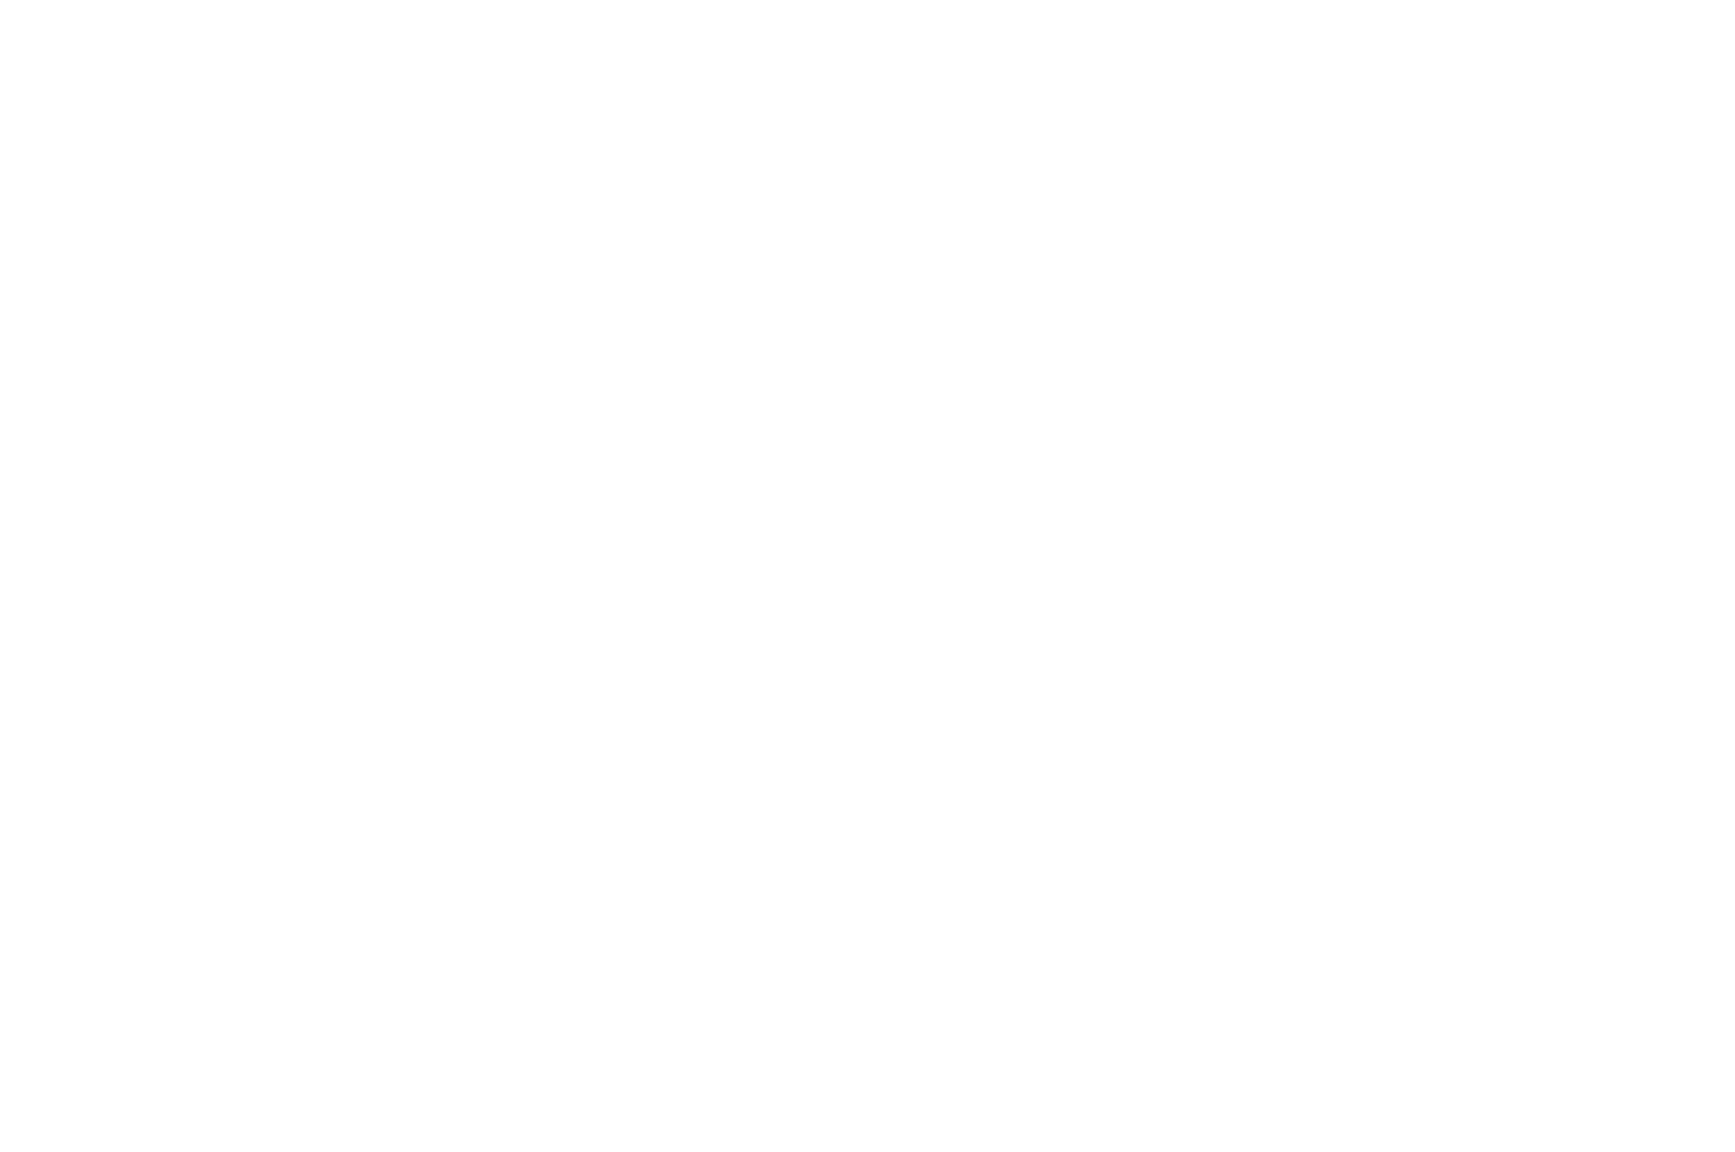 OFFICIAL SELECTION - Miami Fashion Film Festival - 2017.png